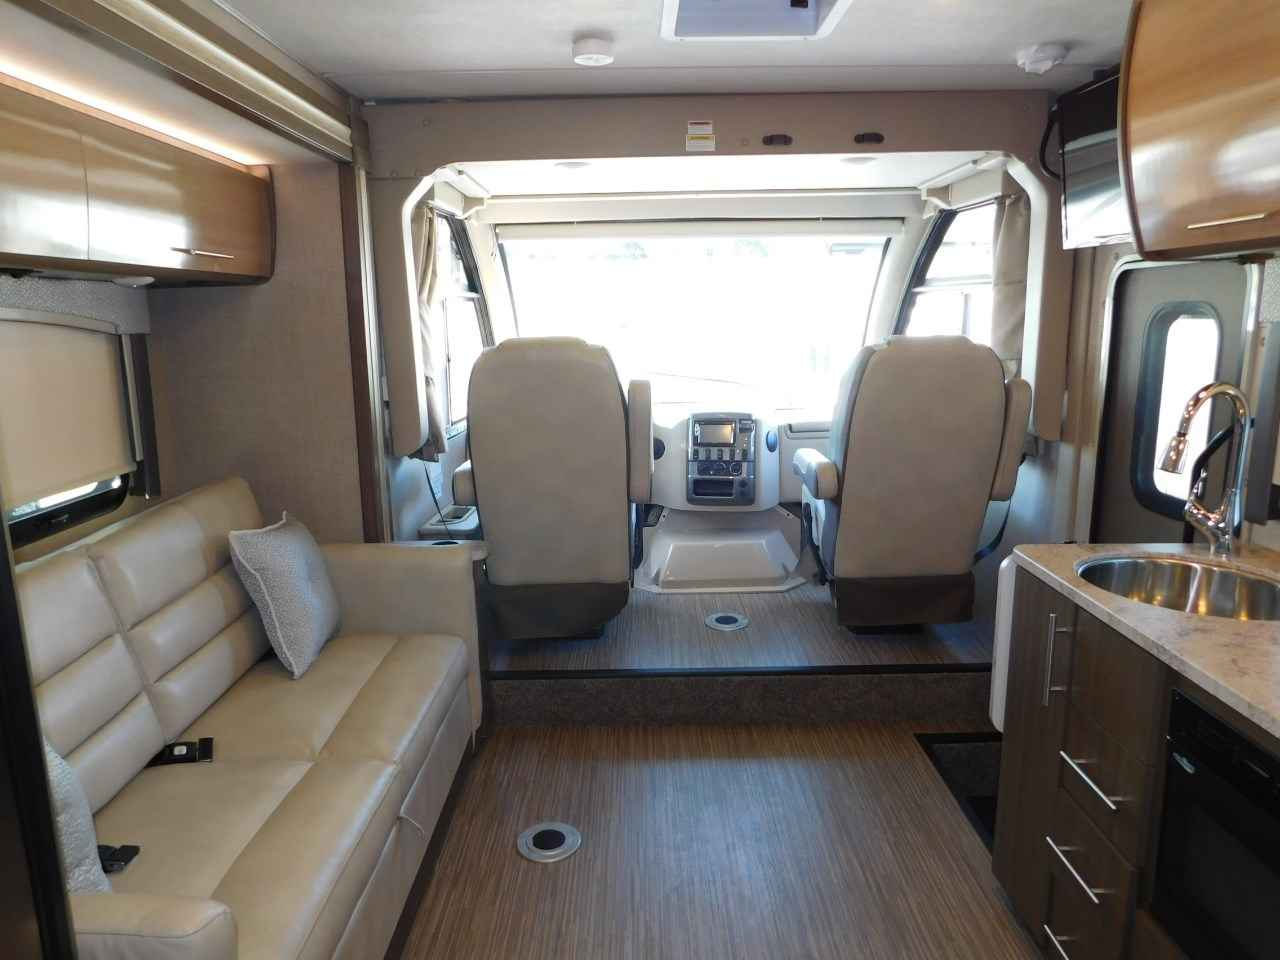 2018 new thor motor coach vegas 25 5 slide out twin king for Motor coaches with 2 bedrooms